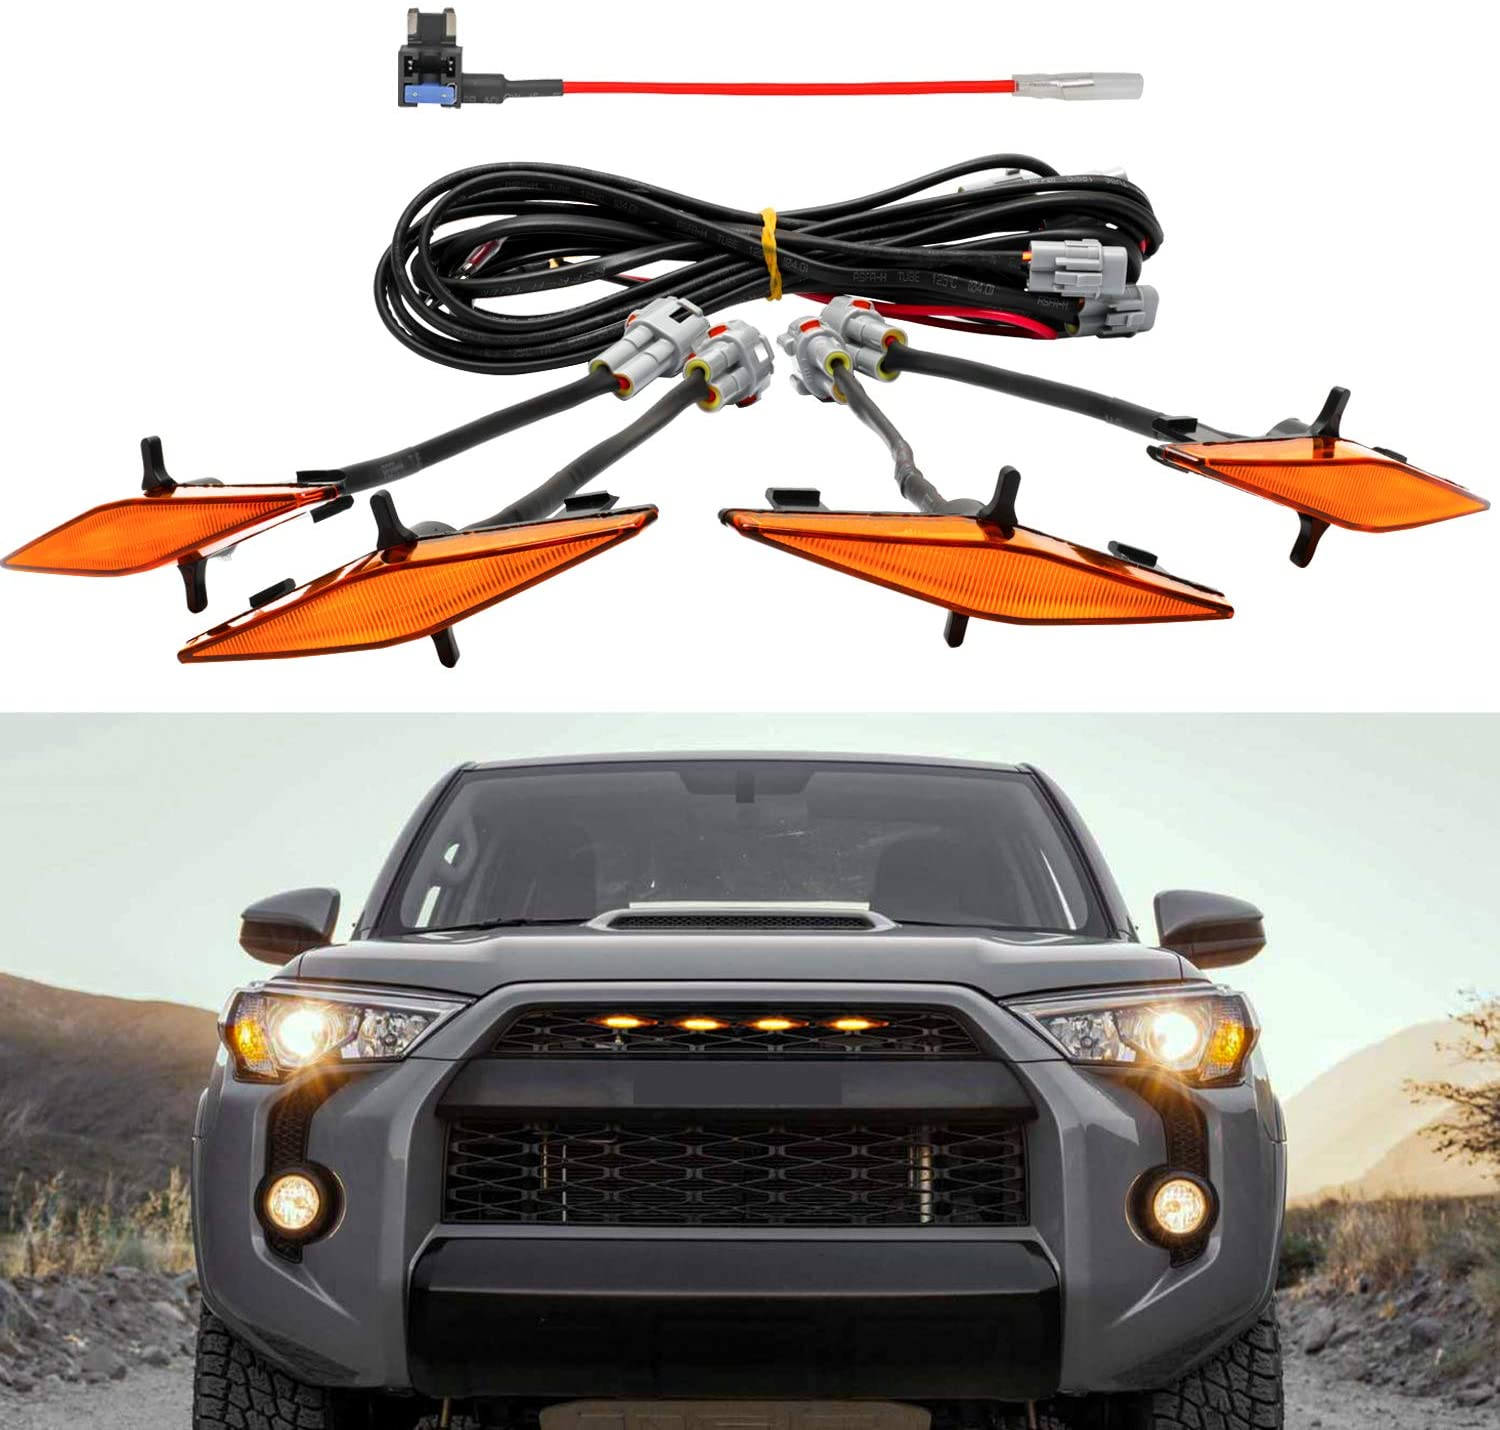 Front  Hood  Grille LED  Lights  Set Assy W/wire Harness For Automobile Car Modification amber